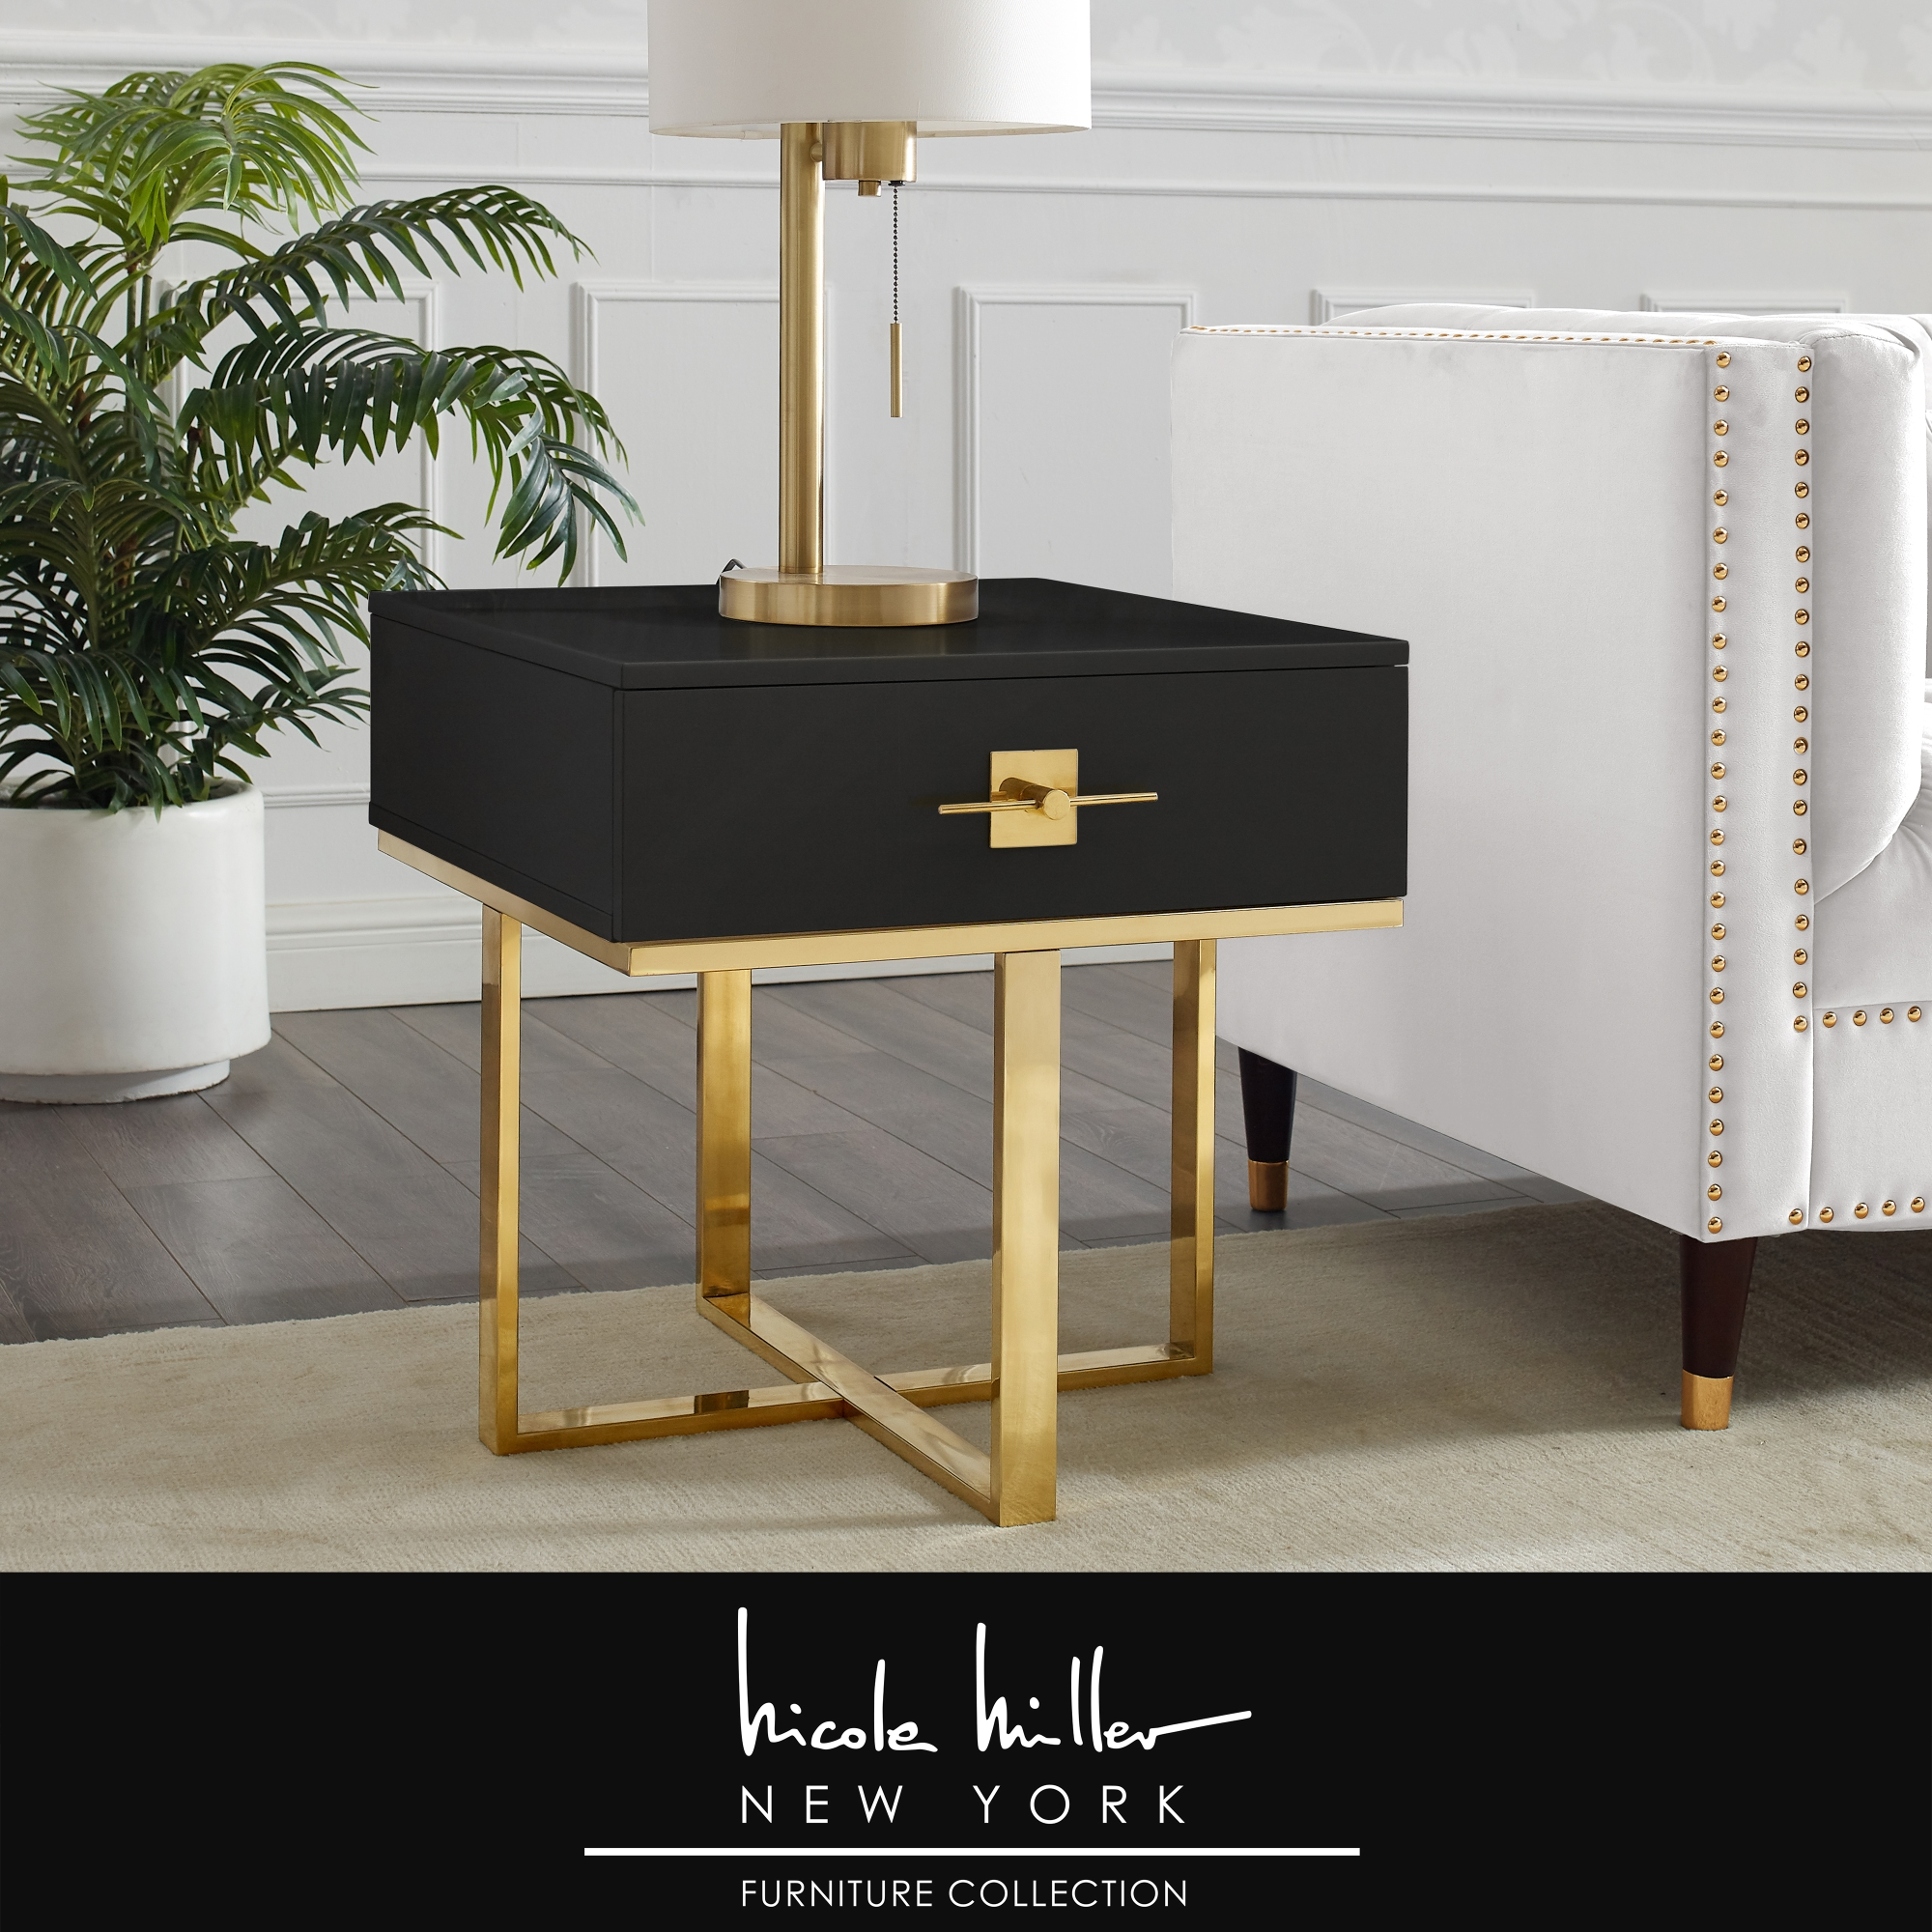 Nicole Miller Black/Gold Side Table 1 Drawer Hight Gloss Lacquer Finish